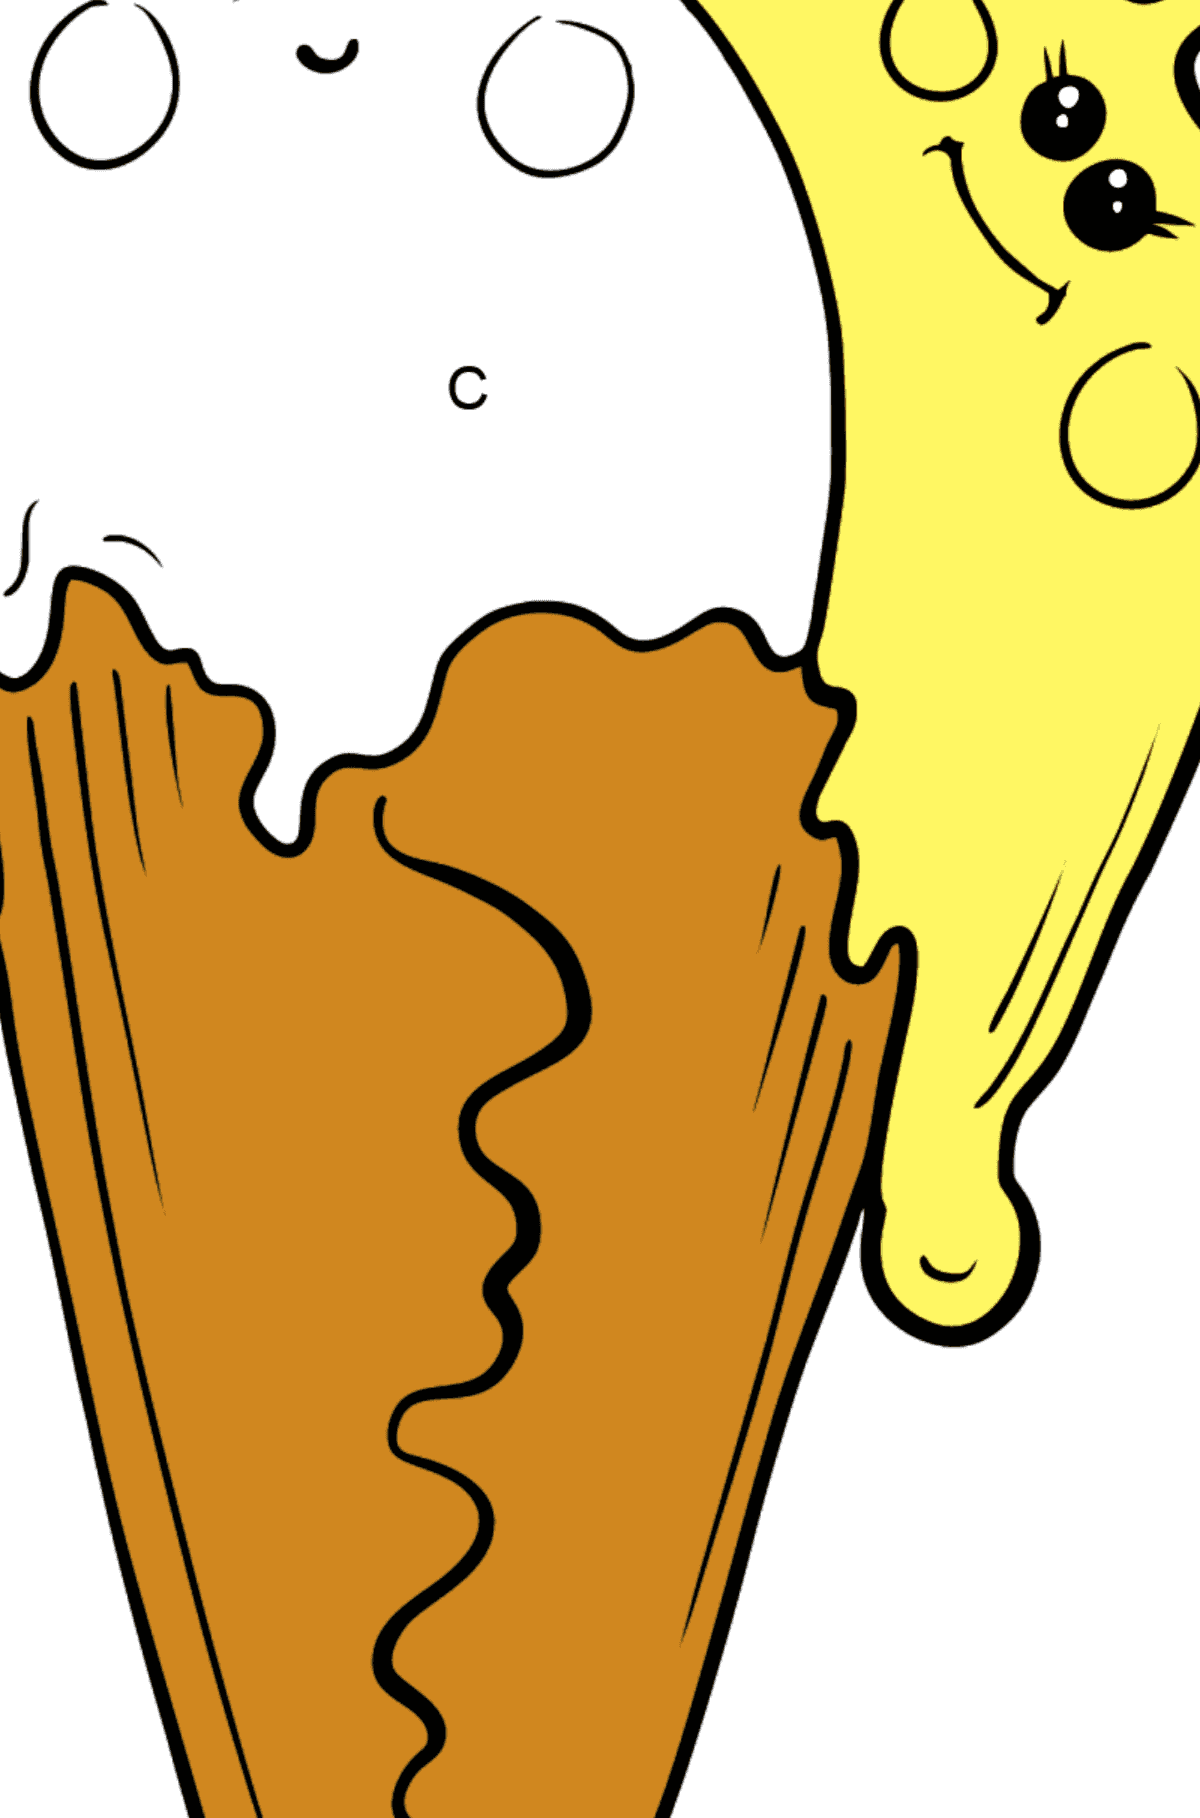 Coloring page - Kawaii Ice Cream (Banana and Strawberry) - Coloring by Letters for Kids